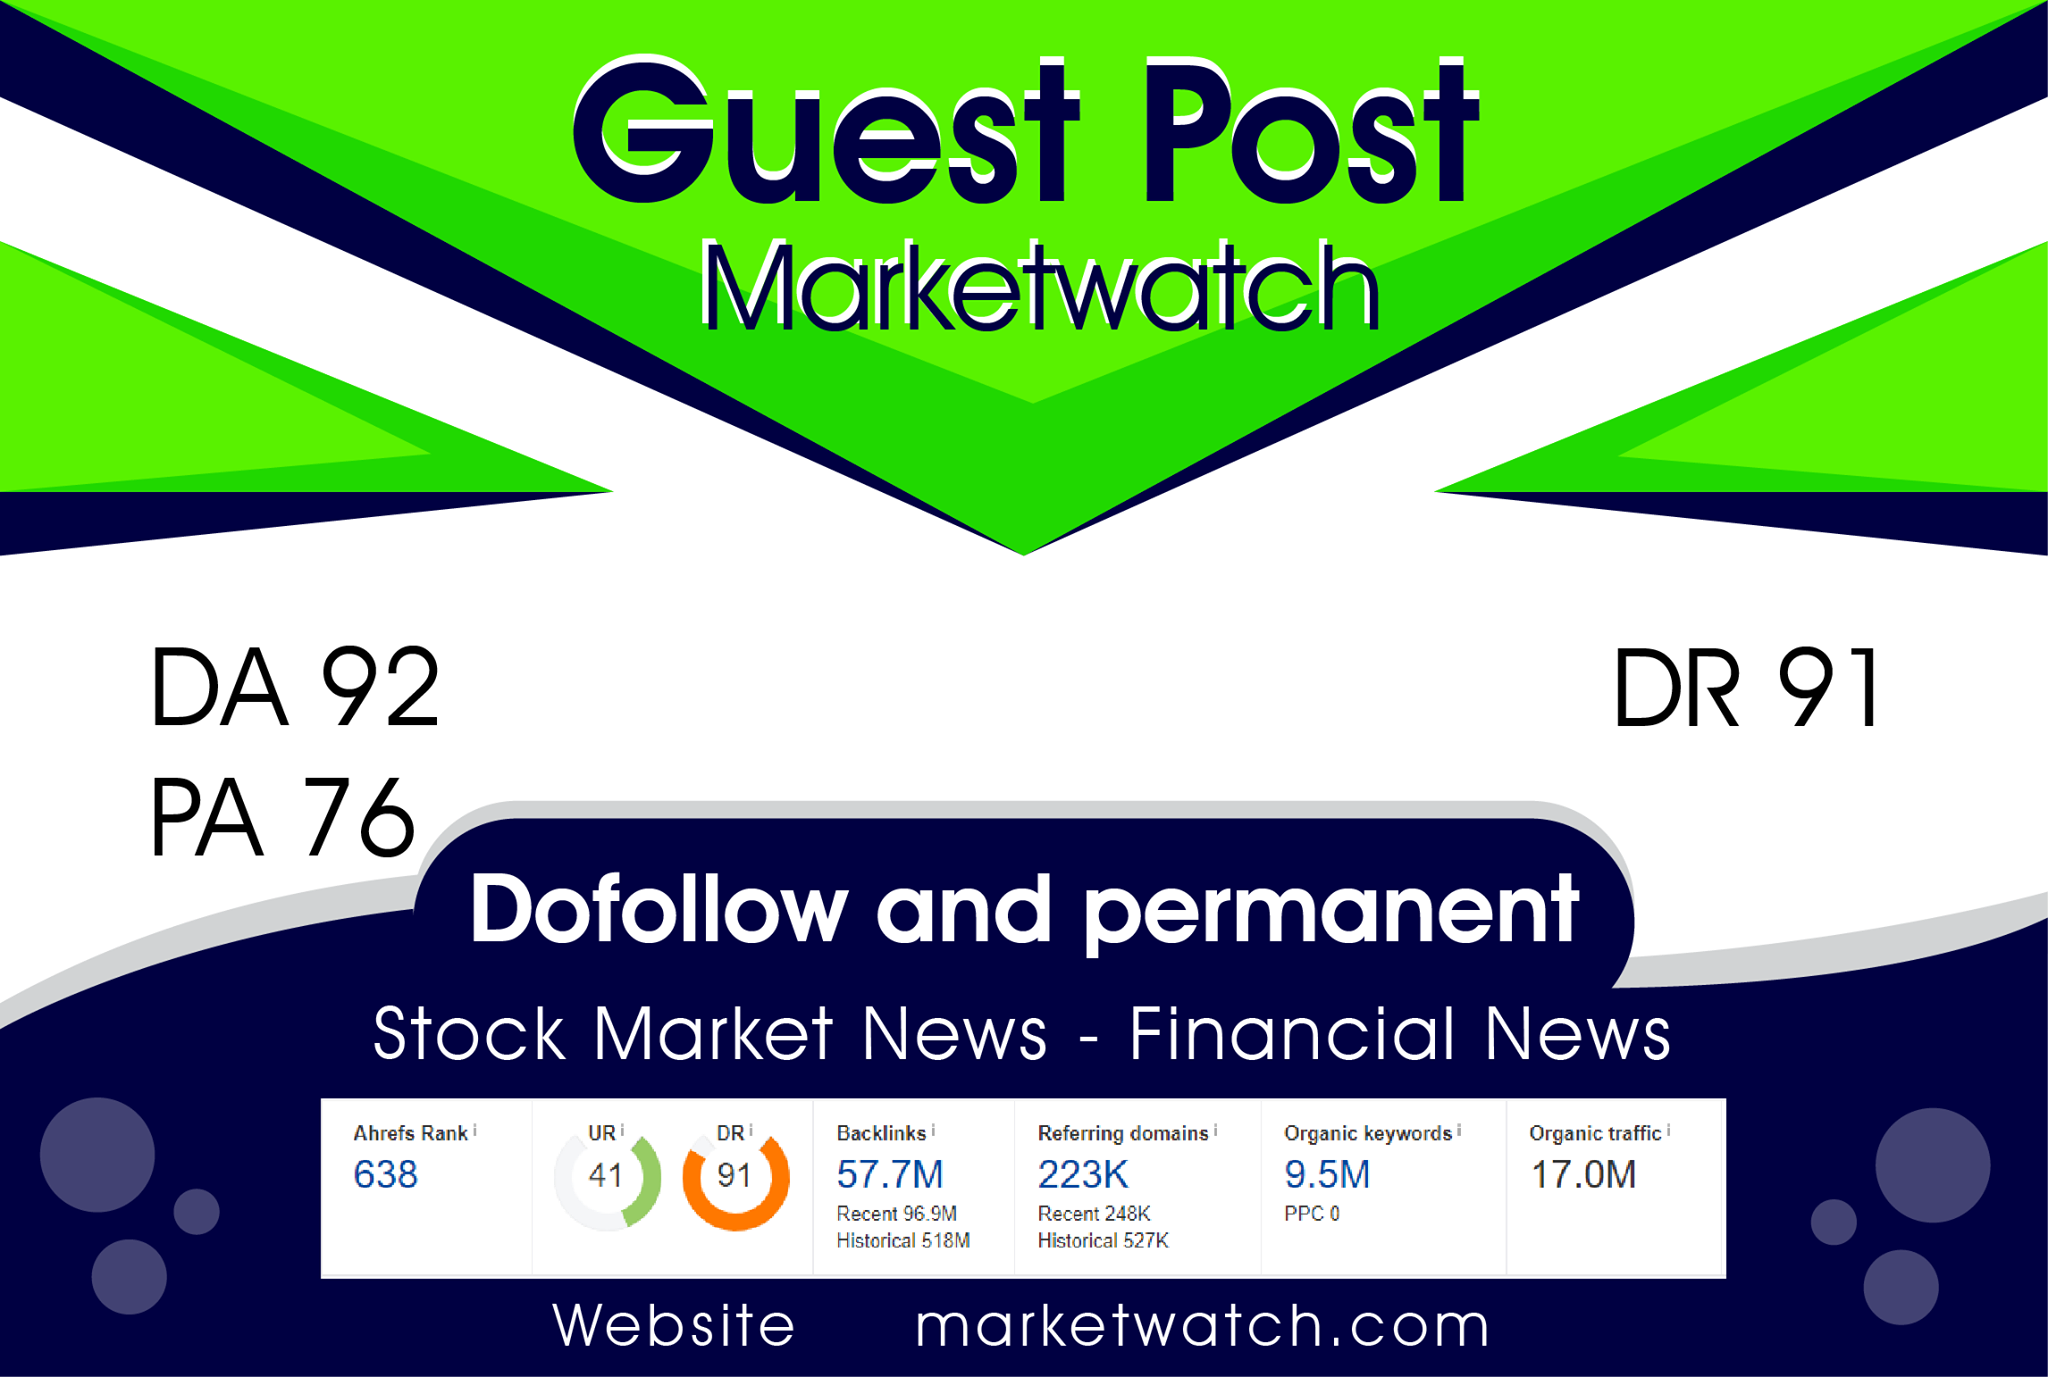 Publish Your Article on marketwatch da 92 with do-follow link